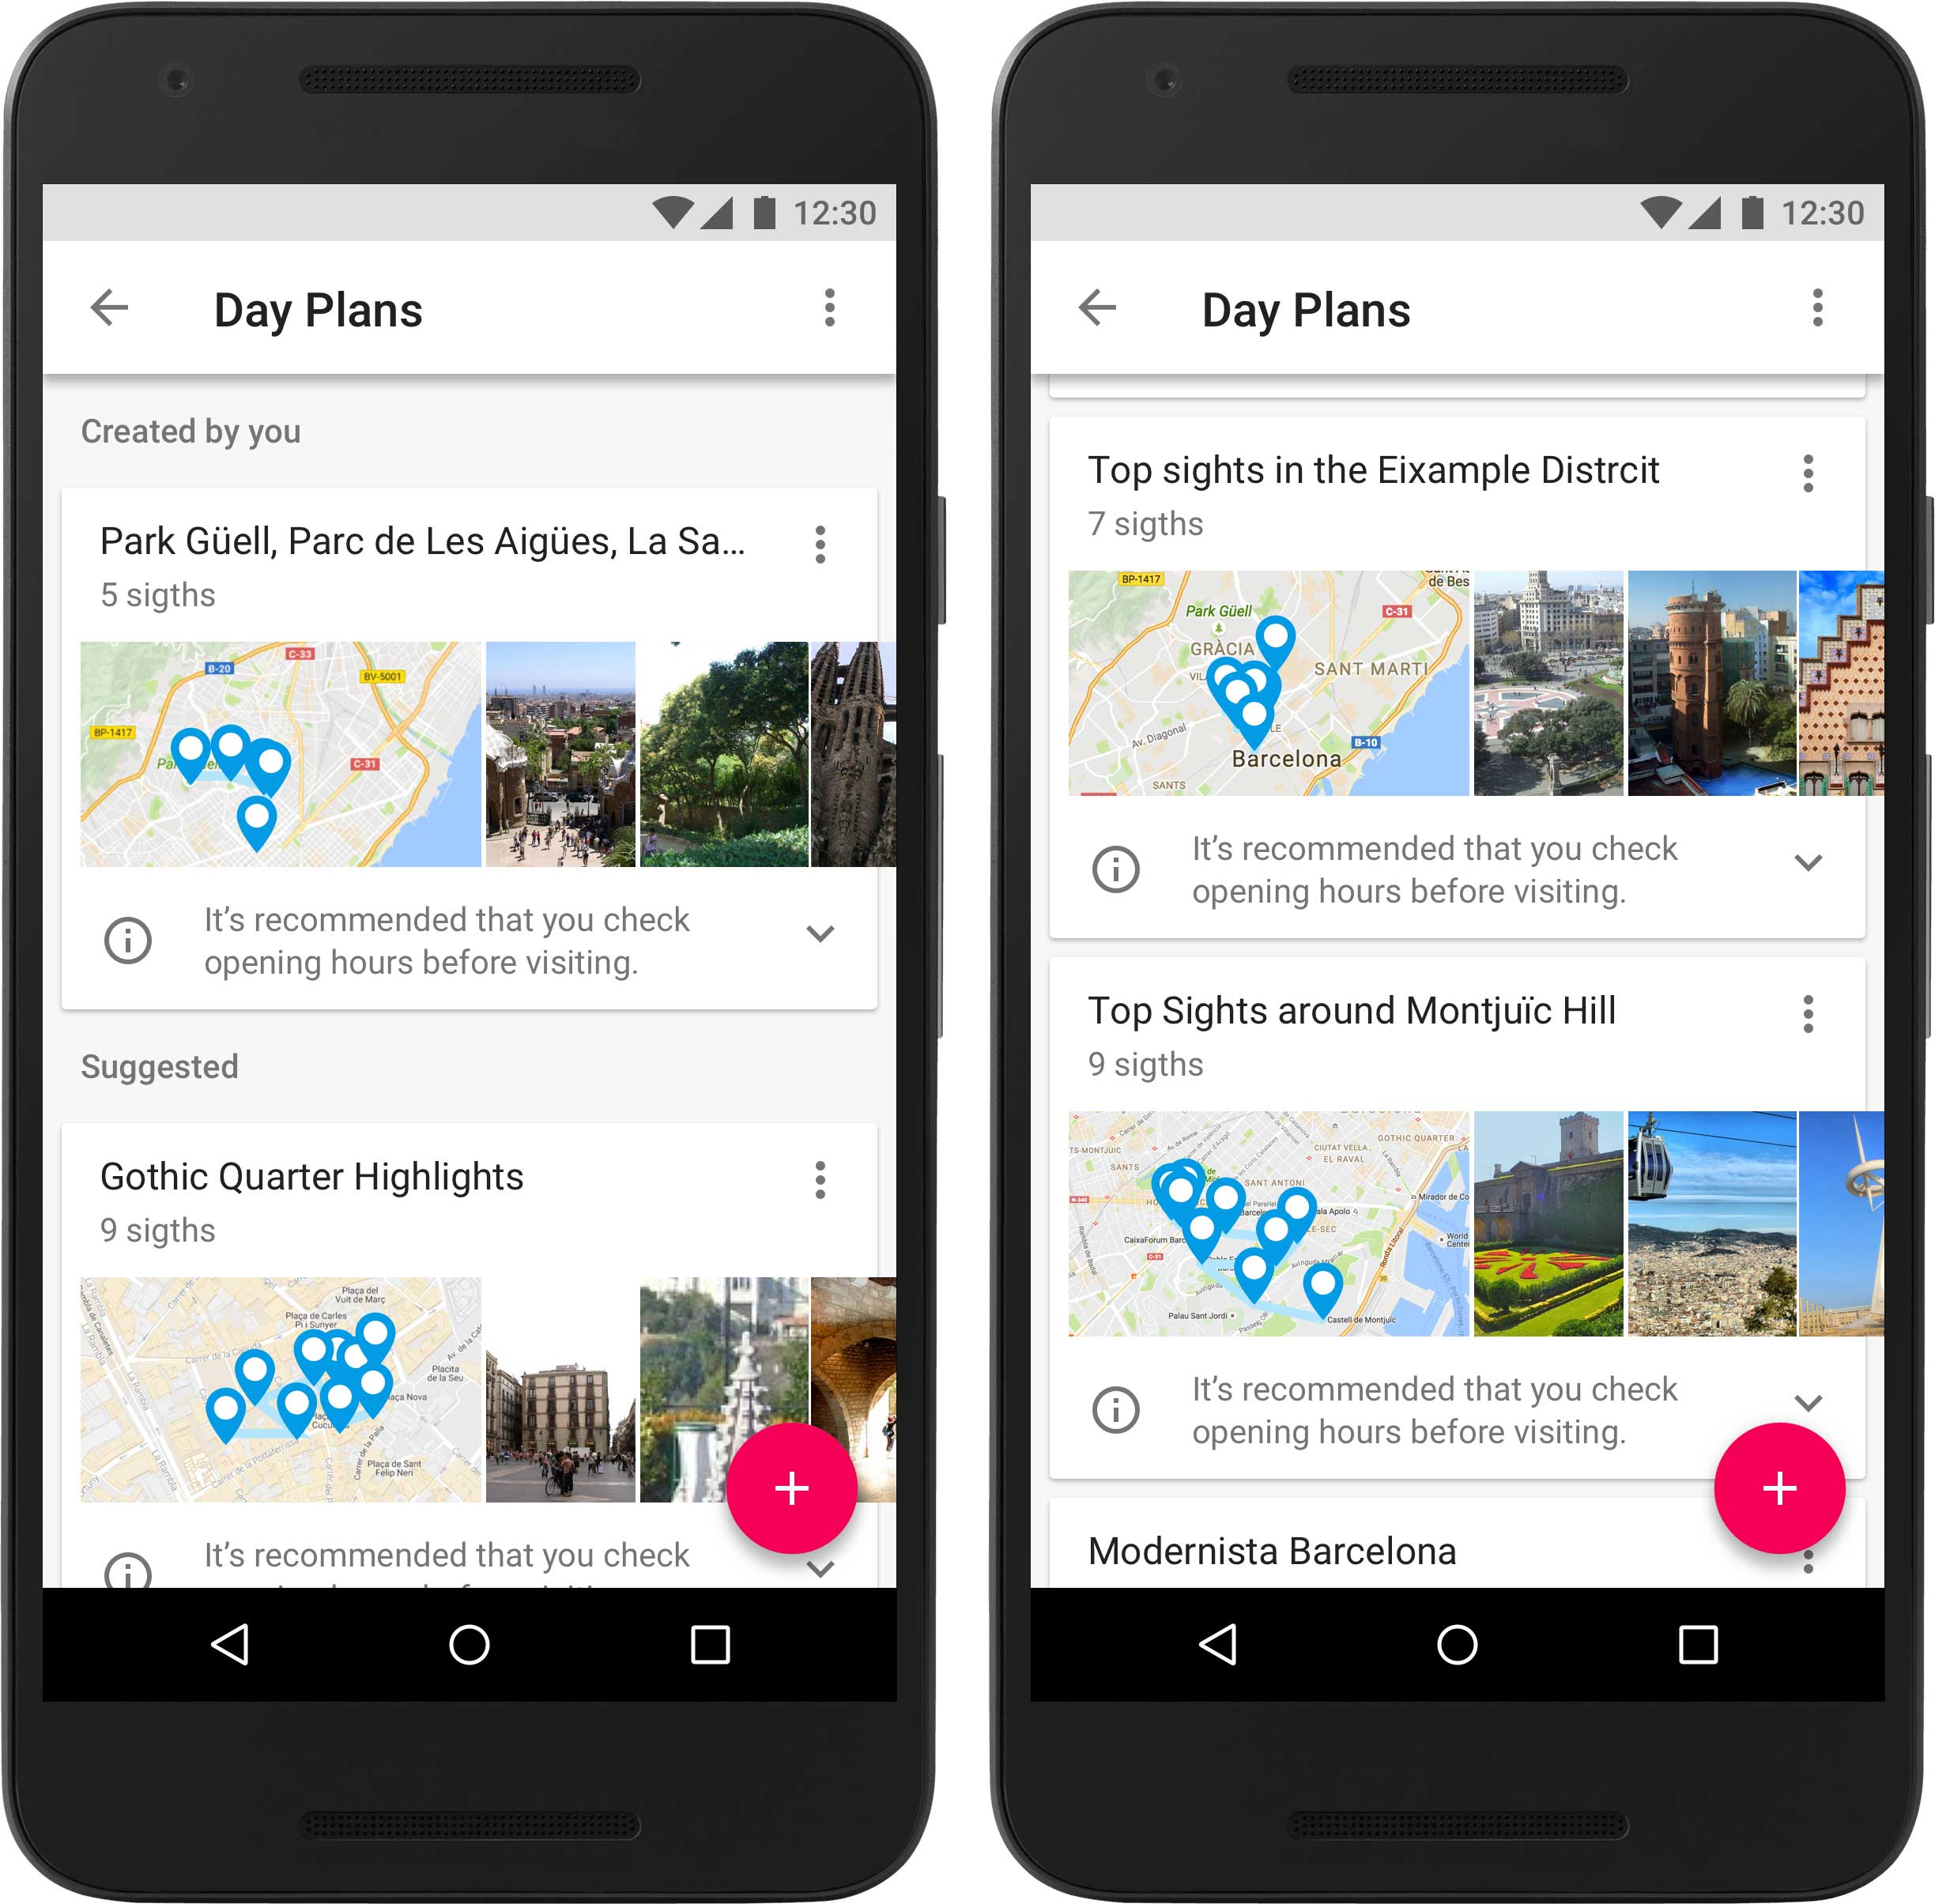 Google Trips uses historical travel information from other users to provide sample itineraries for you based on the top 200 cities around the world.